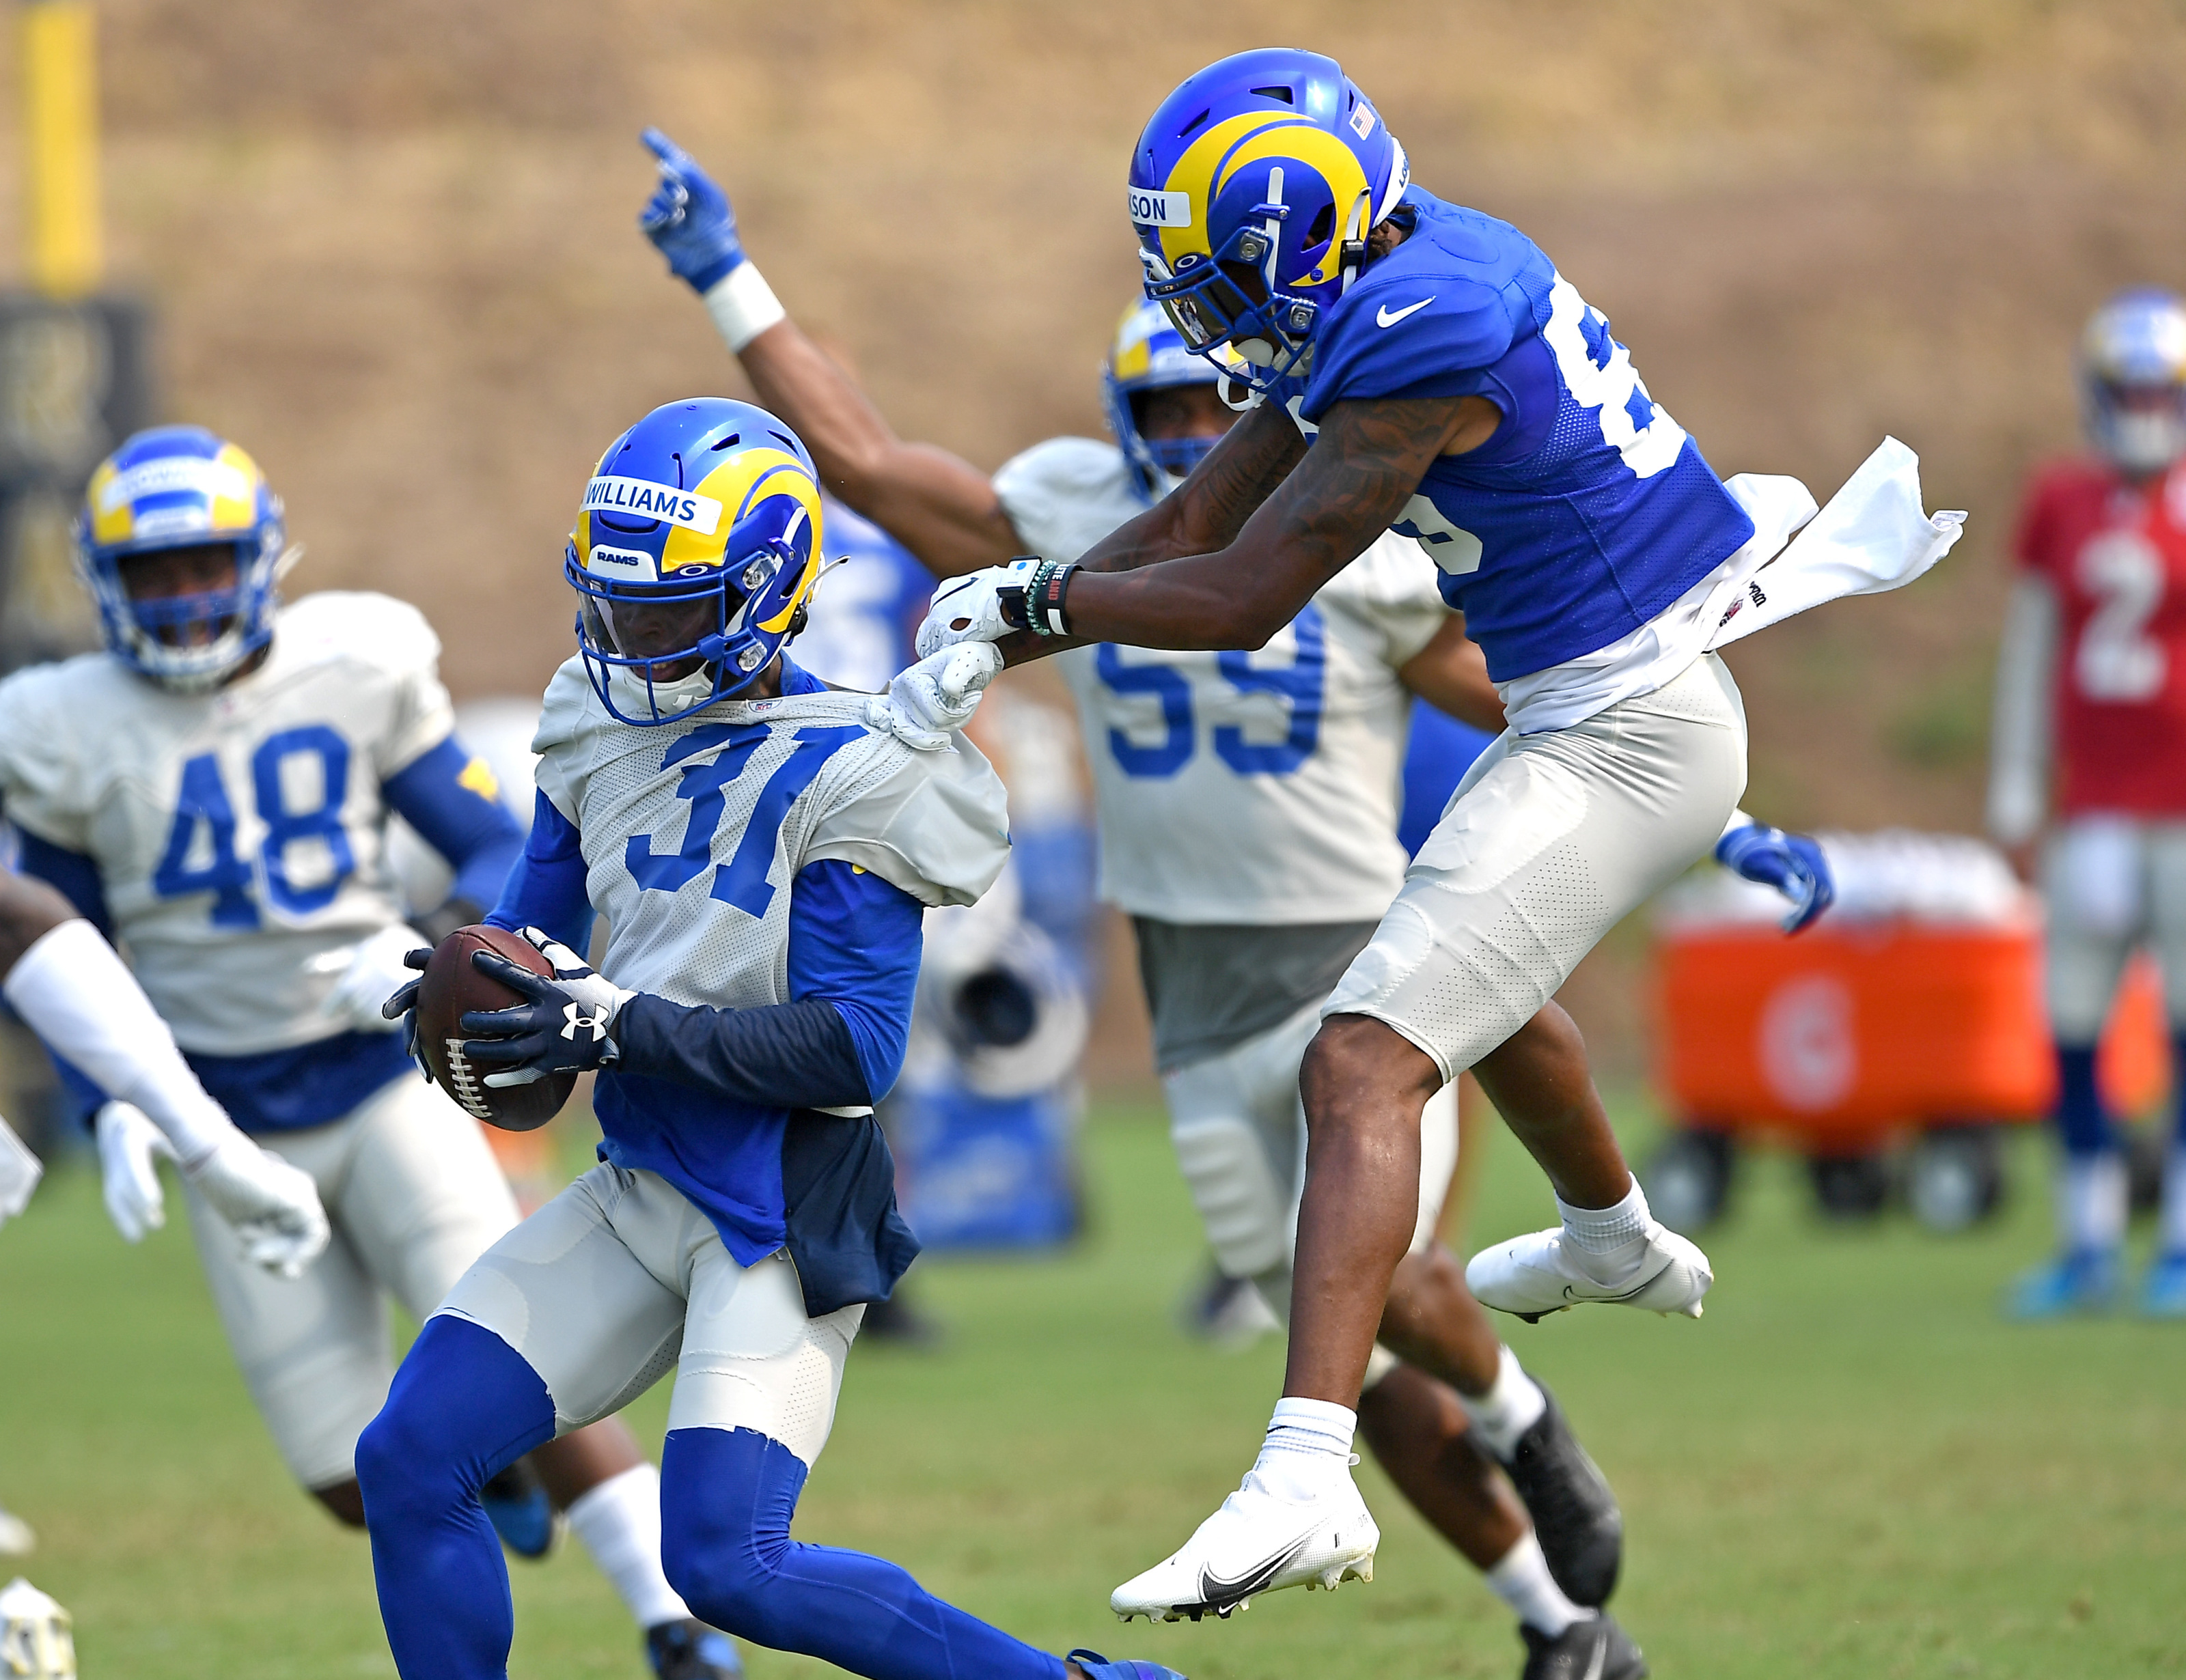 How 3 LA Rams UDFAs overcame isteep odds to make the 53-man roster